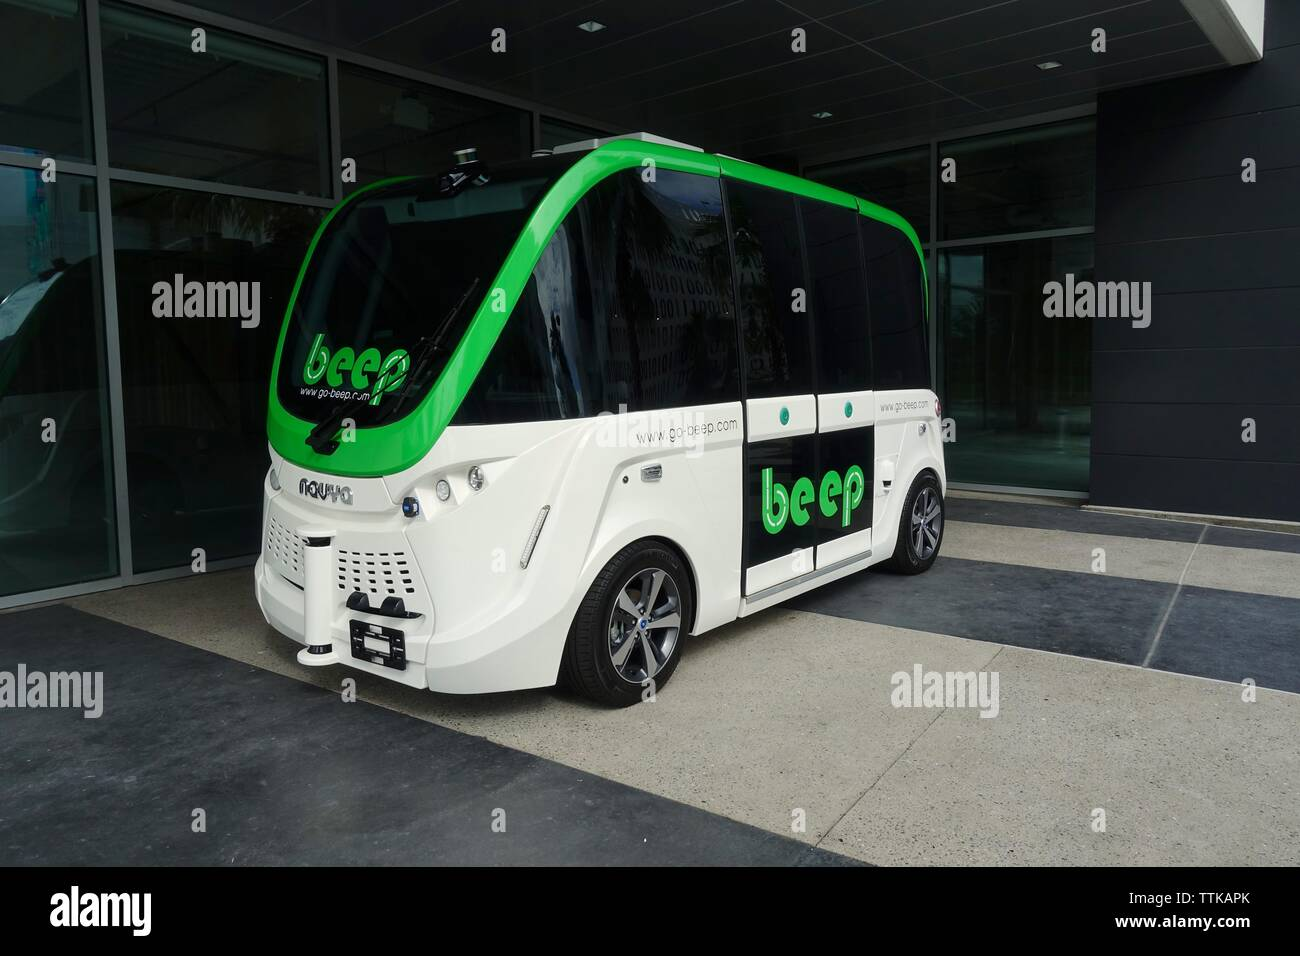 Orlando, FL/USA-6/16/19: Beep is a shared mobility shuttle that is driverless and autonomous developed by NAVYA, which serves cities and private sites. - Stock Image